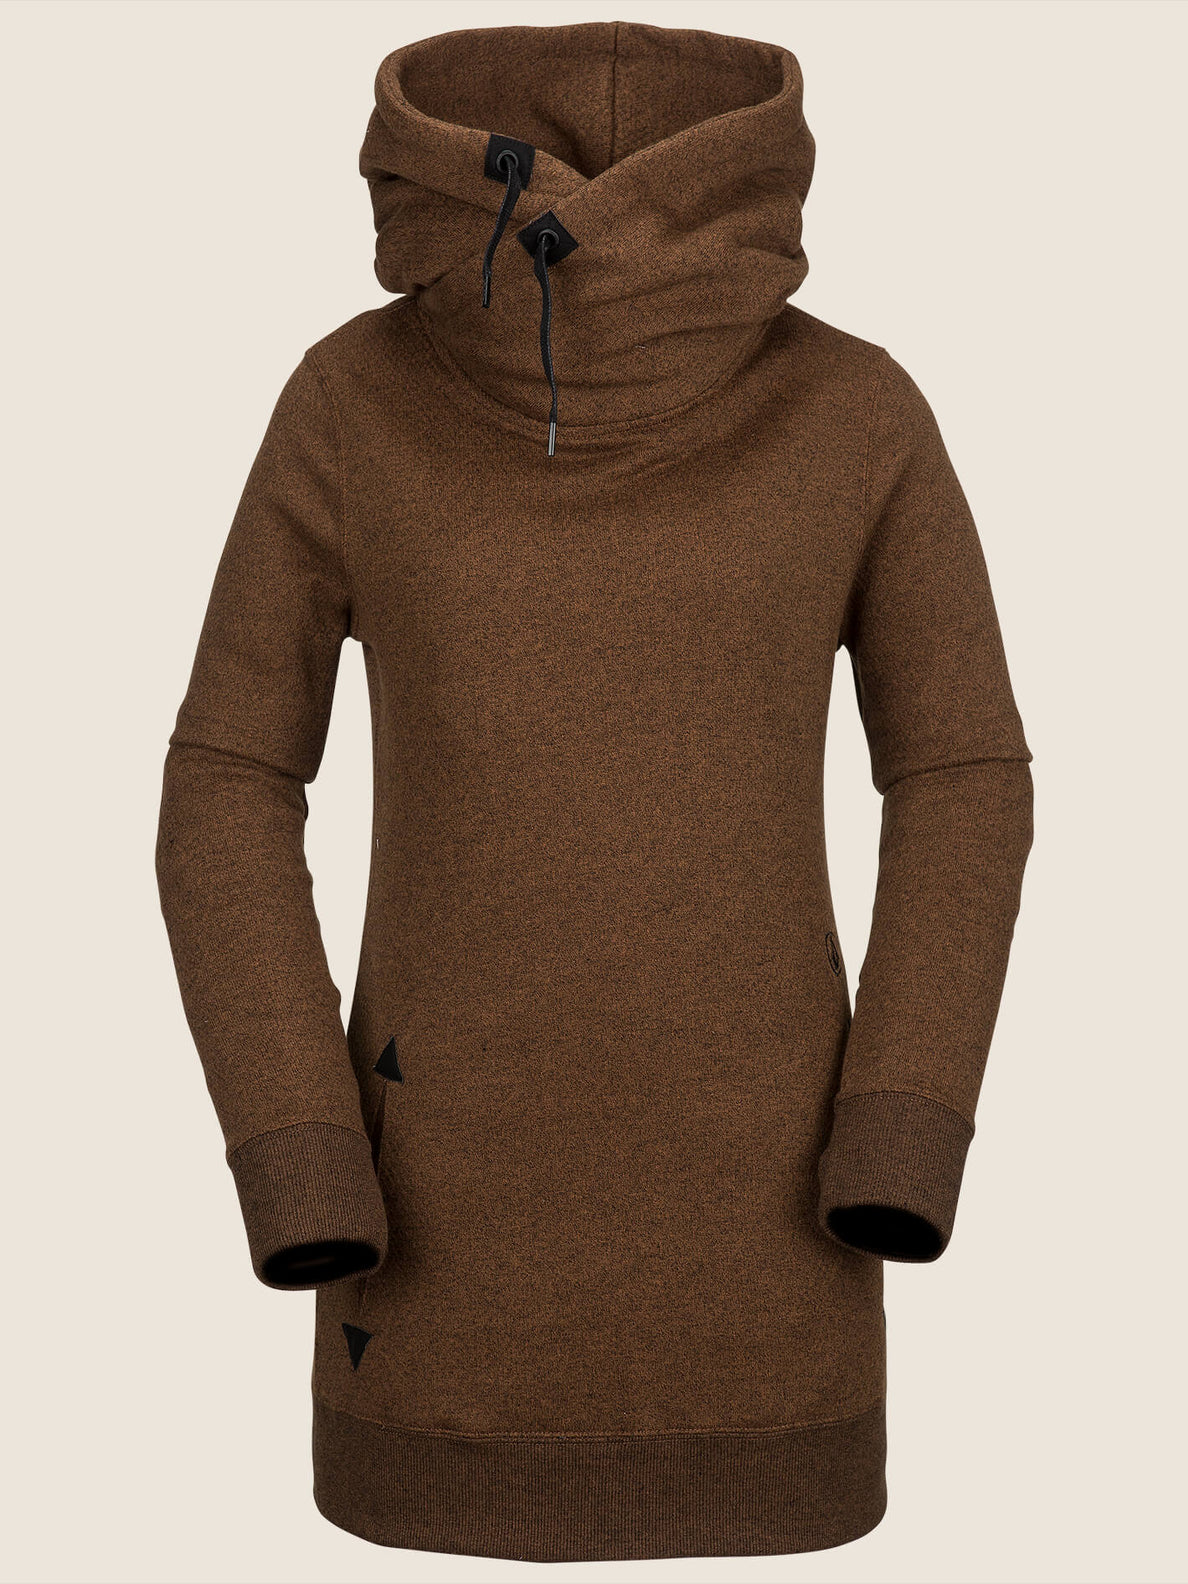 Tower Pullover Fleece In Copper, Front View